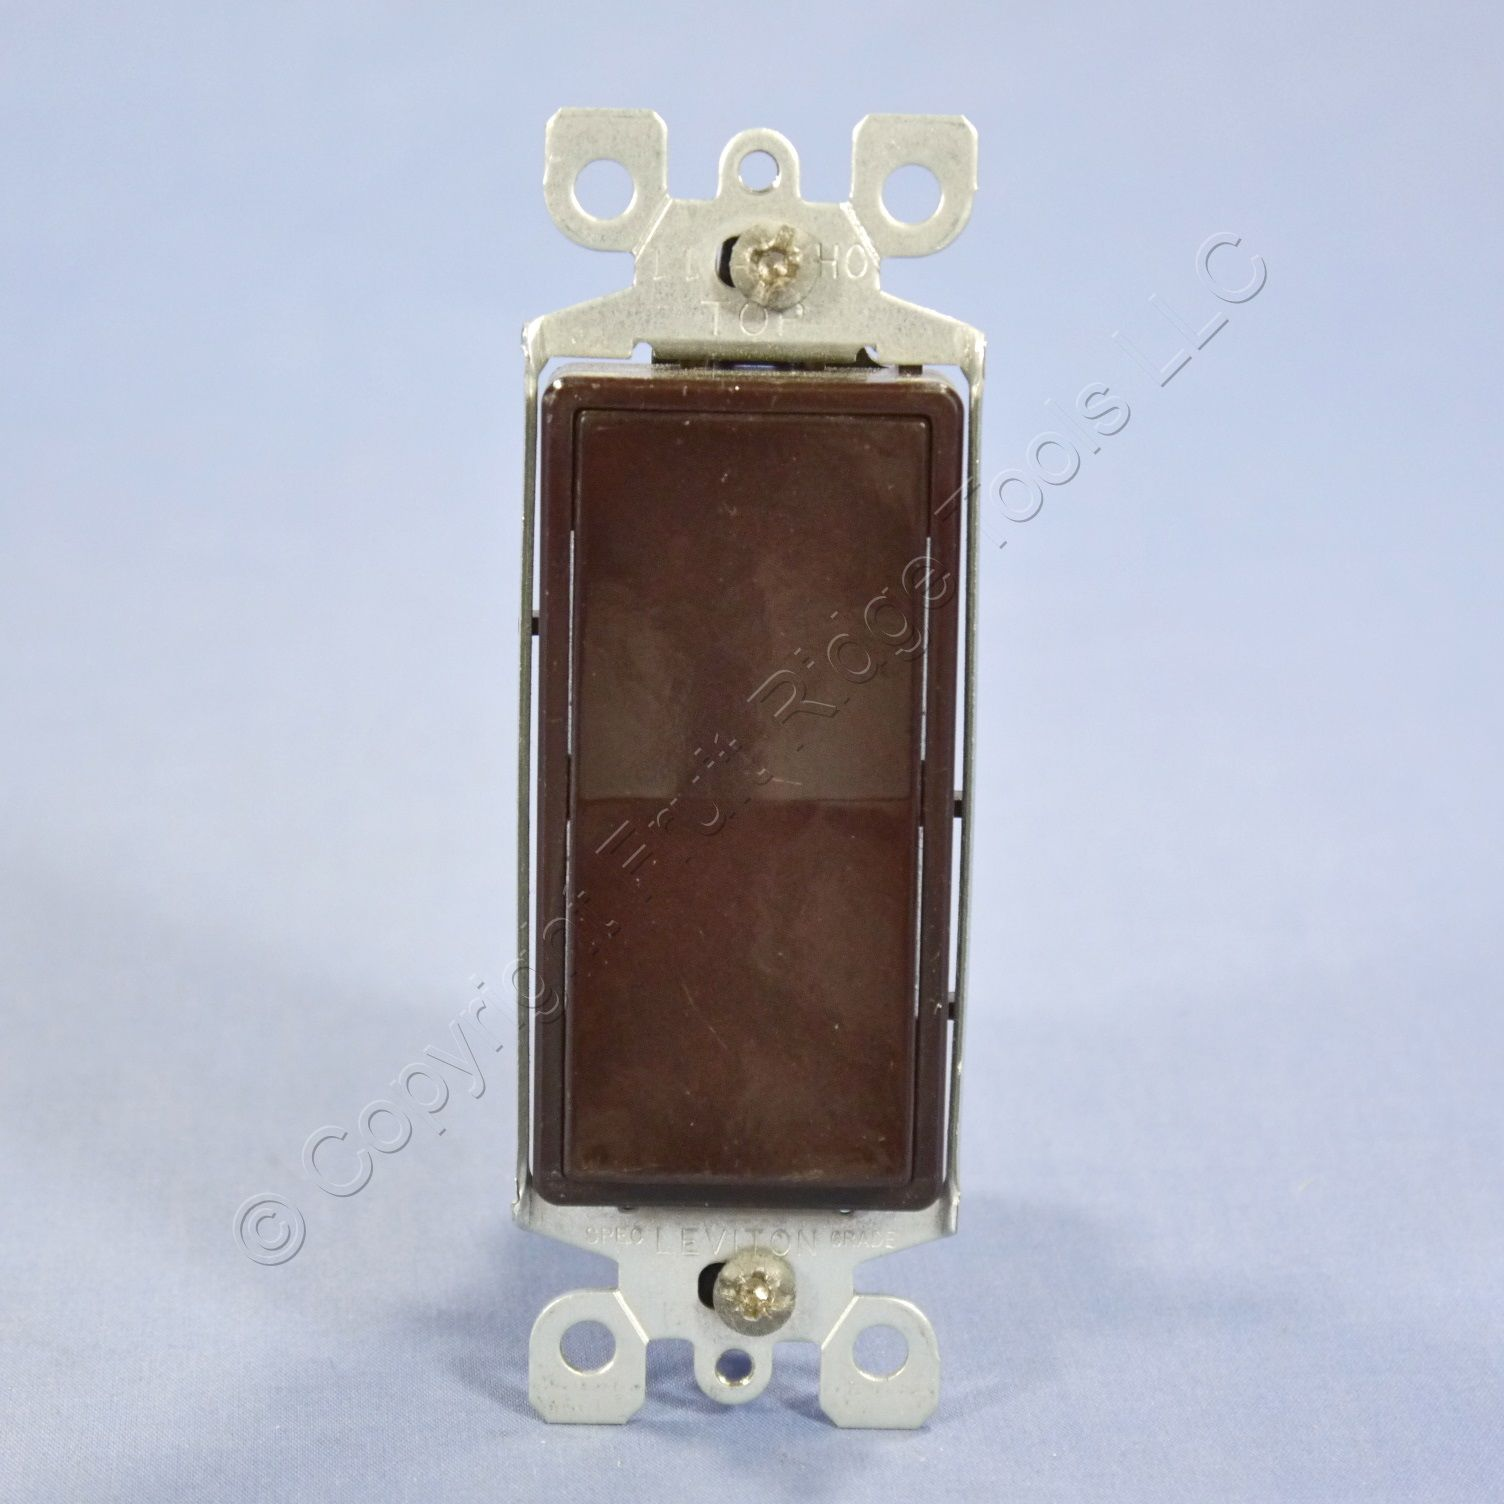 Leviton brown decora dhc multi remote wall light switch for Decora light switches